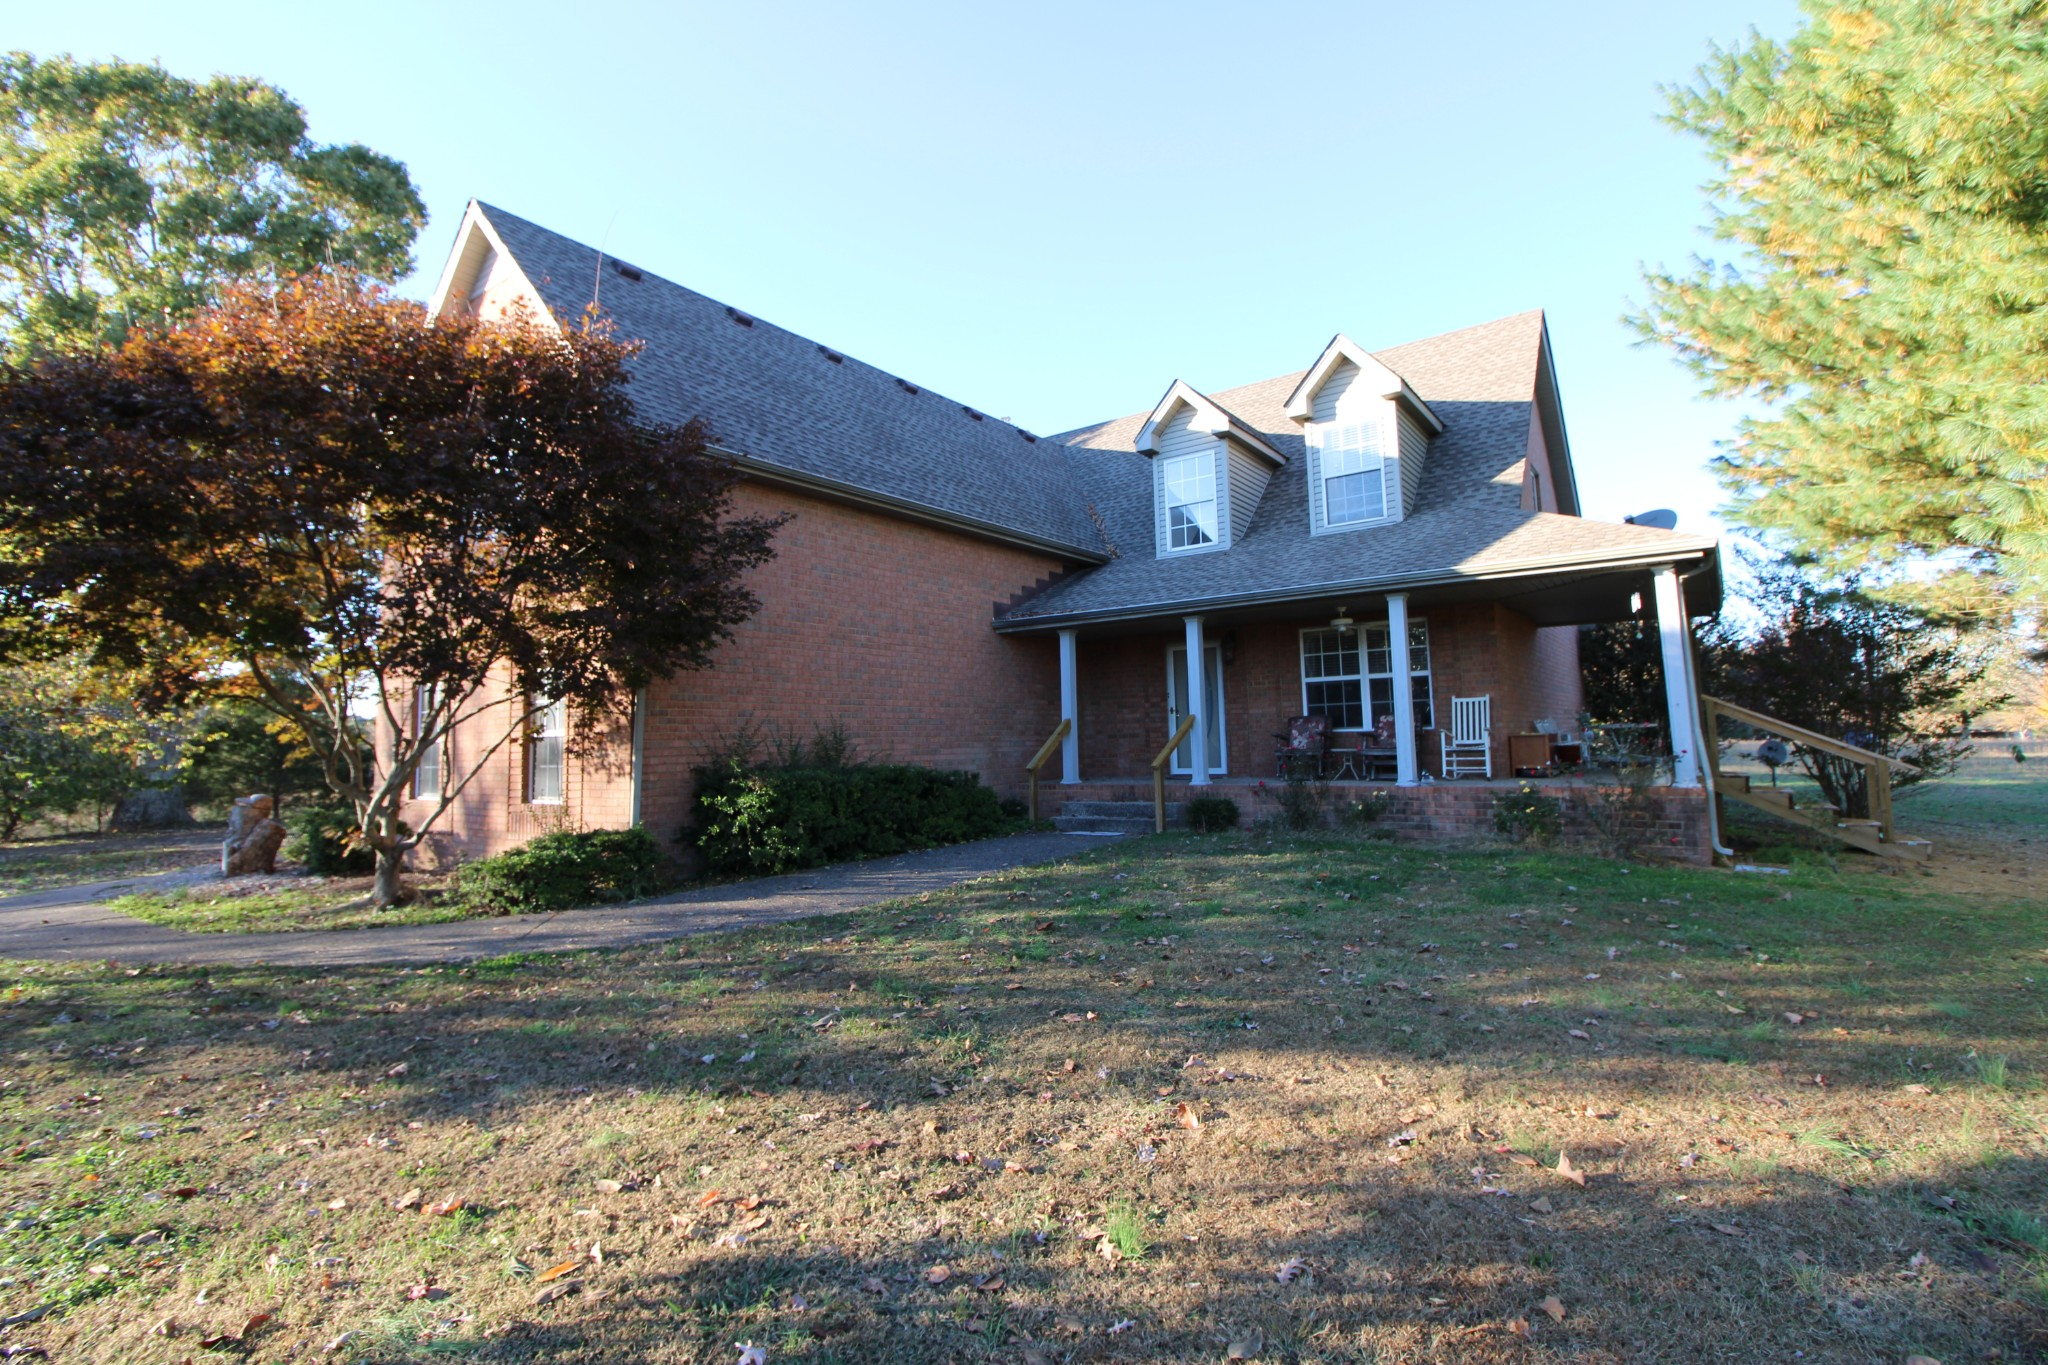 248 W Hester Rd, Cottontown, TN 37048 - Cottontown, TN real estate listing